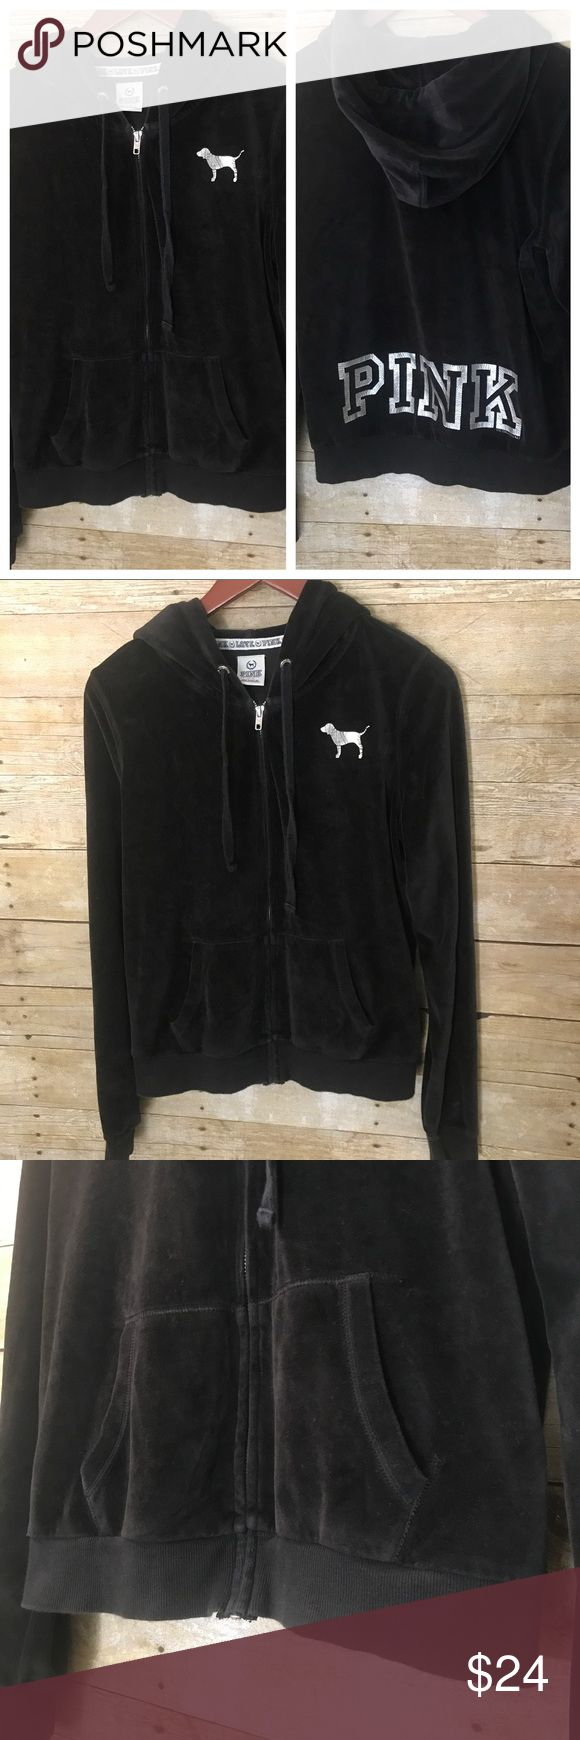 VS PINK Black Velour Zip Up Hoodie SZ M Victoria's Secret PINK velour zip up track suit hoodie in black with silver puppy logo on front and PINK in solve on back. Some minor wash wear on hem band as pictured, otherwise good condition, plenty of life left! PINK Victoria's Secret Jackets & Coats